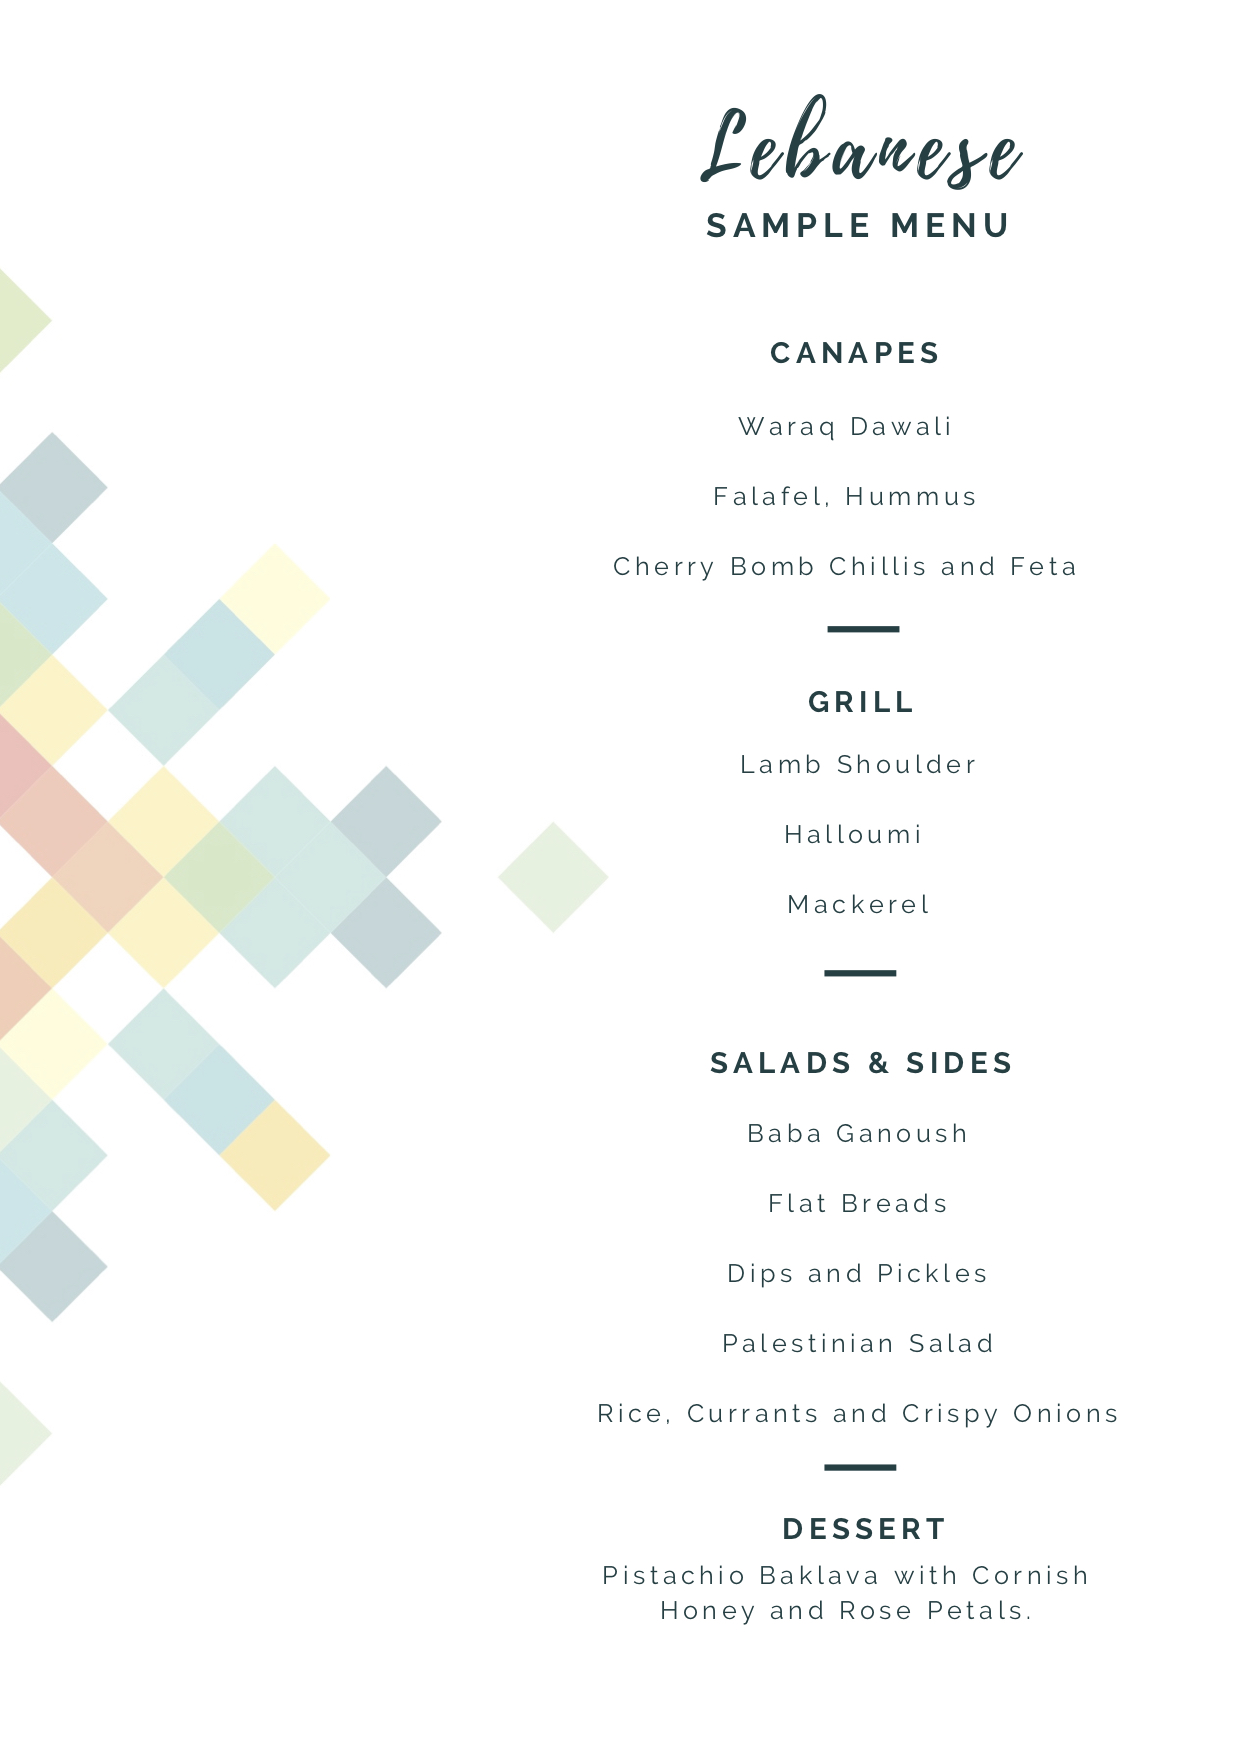 El Huichol Lebanese sample menu.jpg